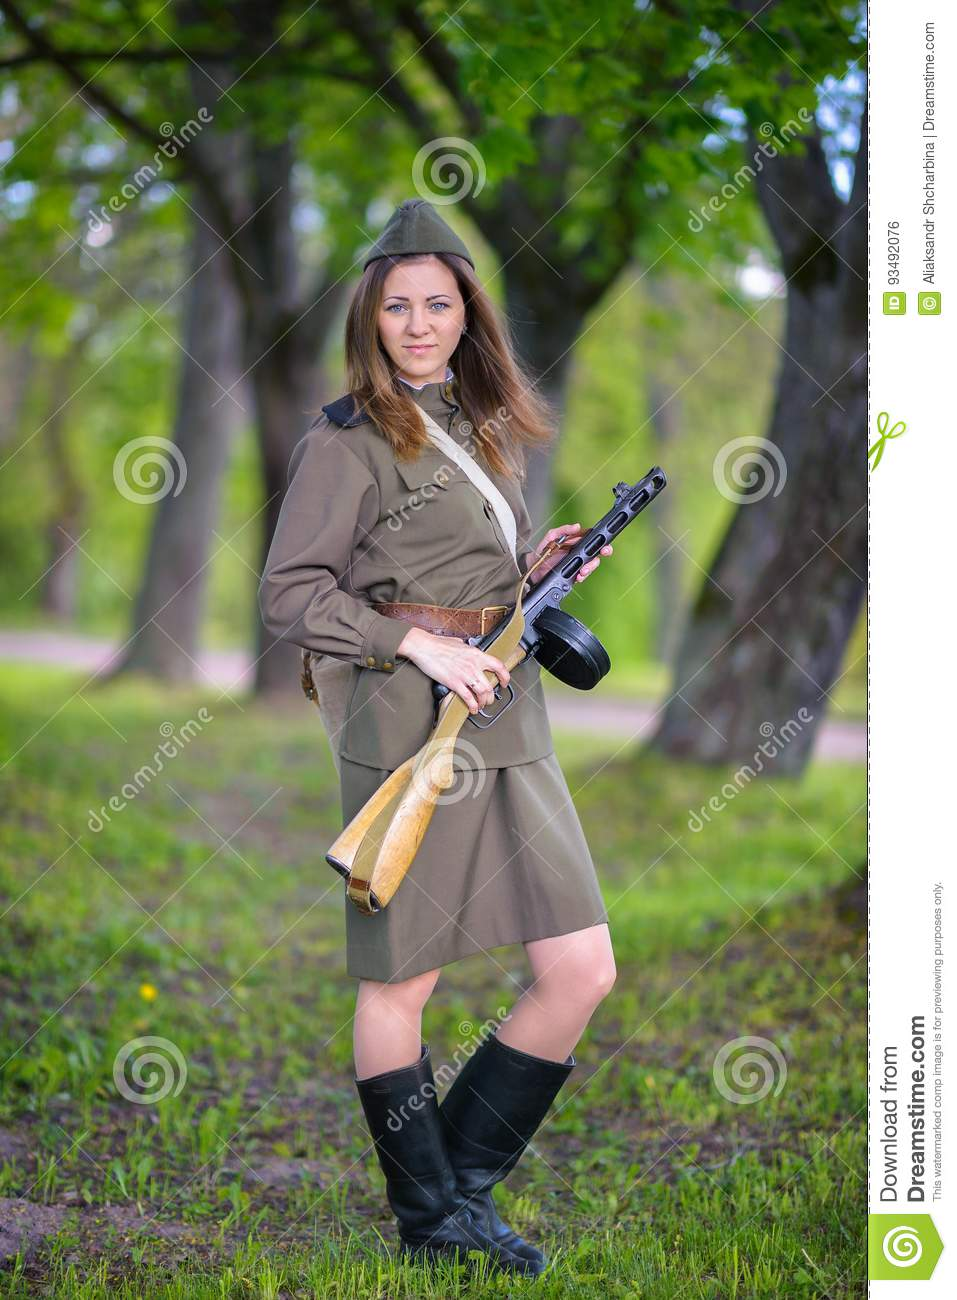 Woman in a submachine gun in hands